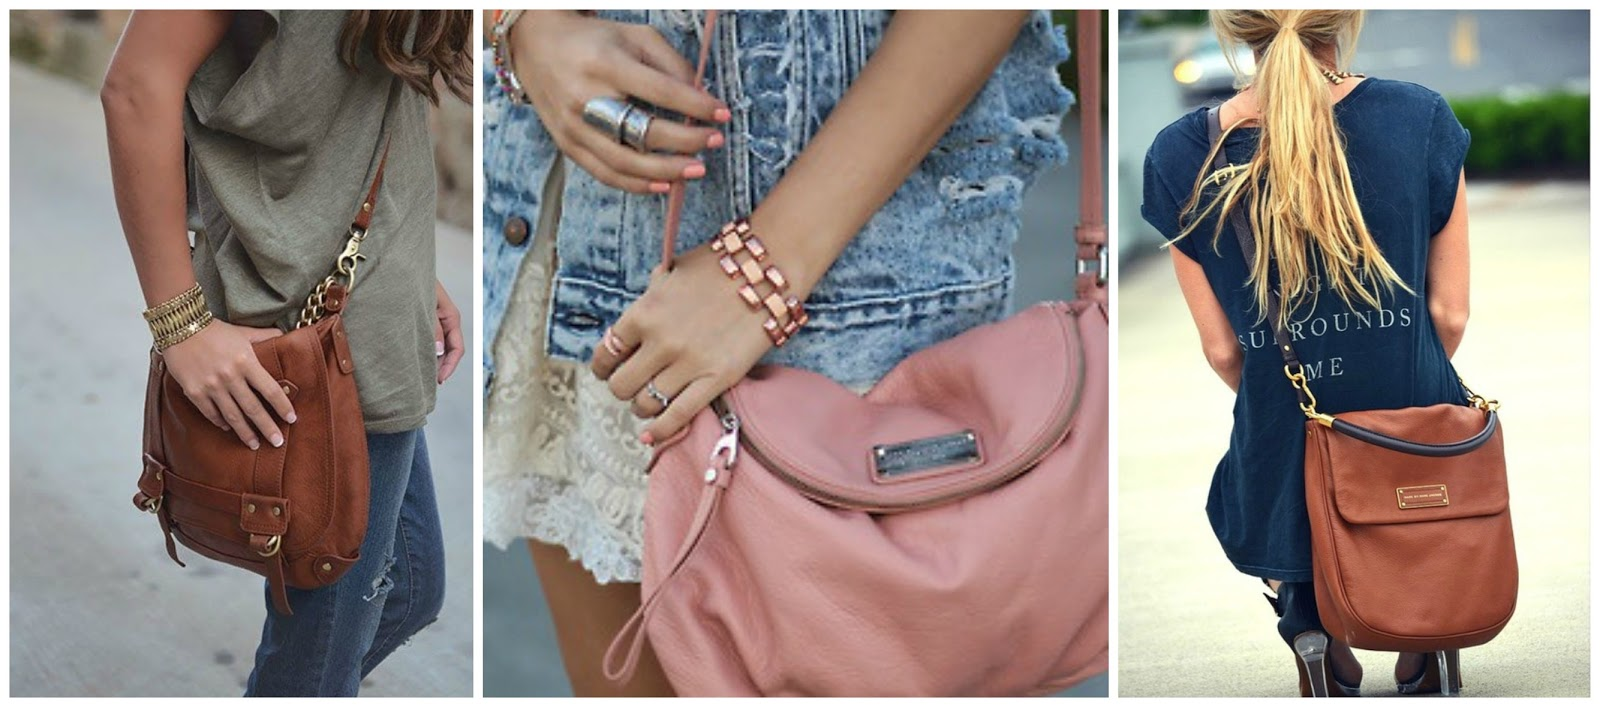 11 Most Expensive Cross Body Bags In The World 4f2c4c249dbf8